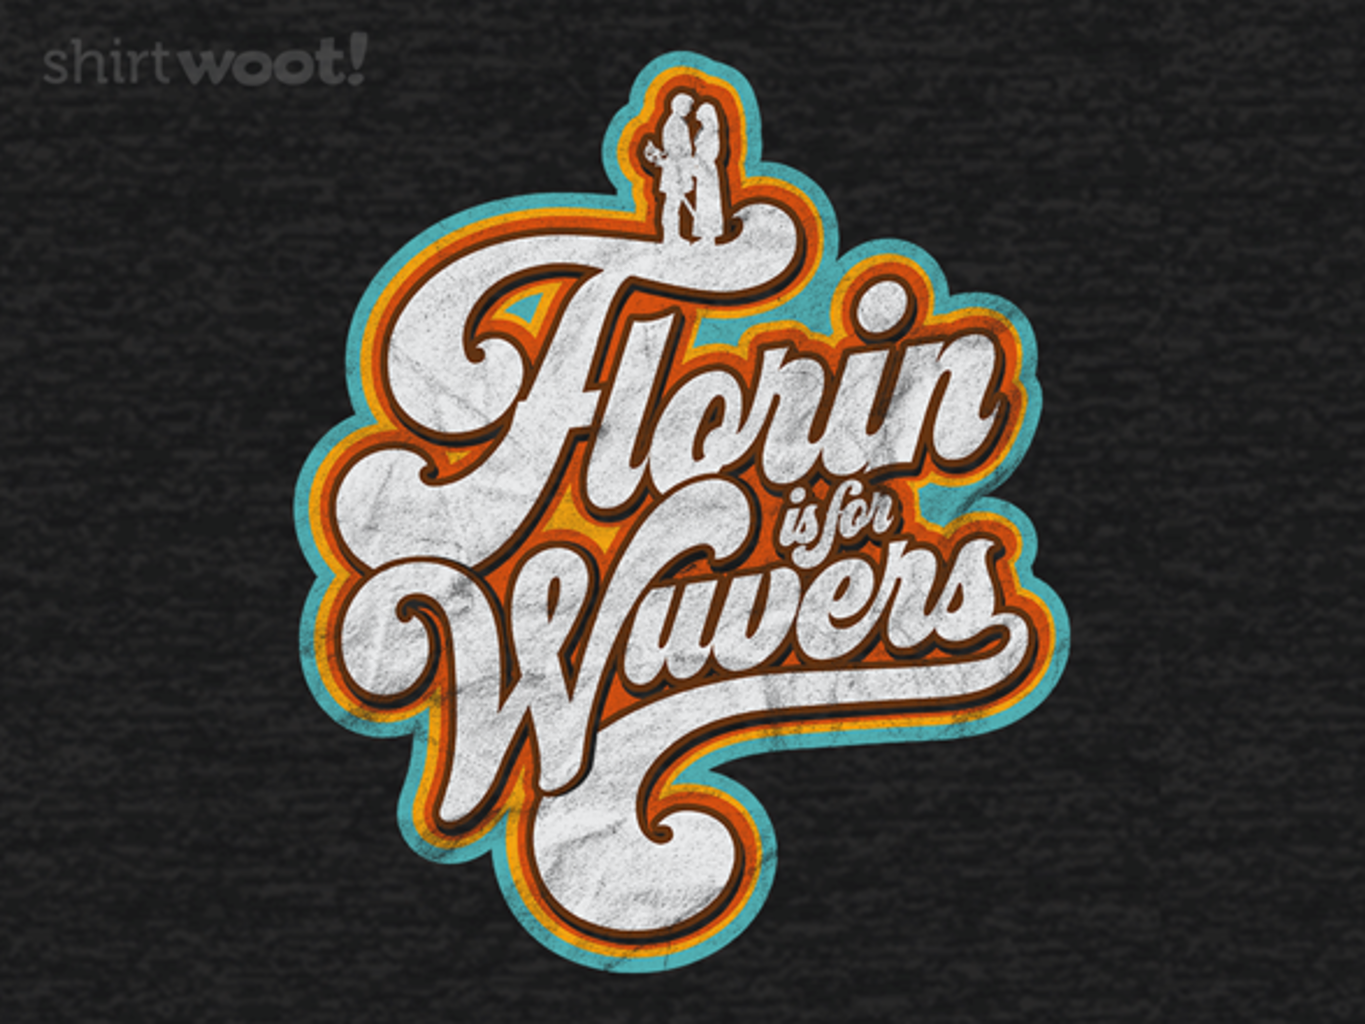 Woot!: Florin is for Wuvers